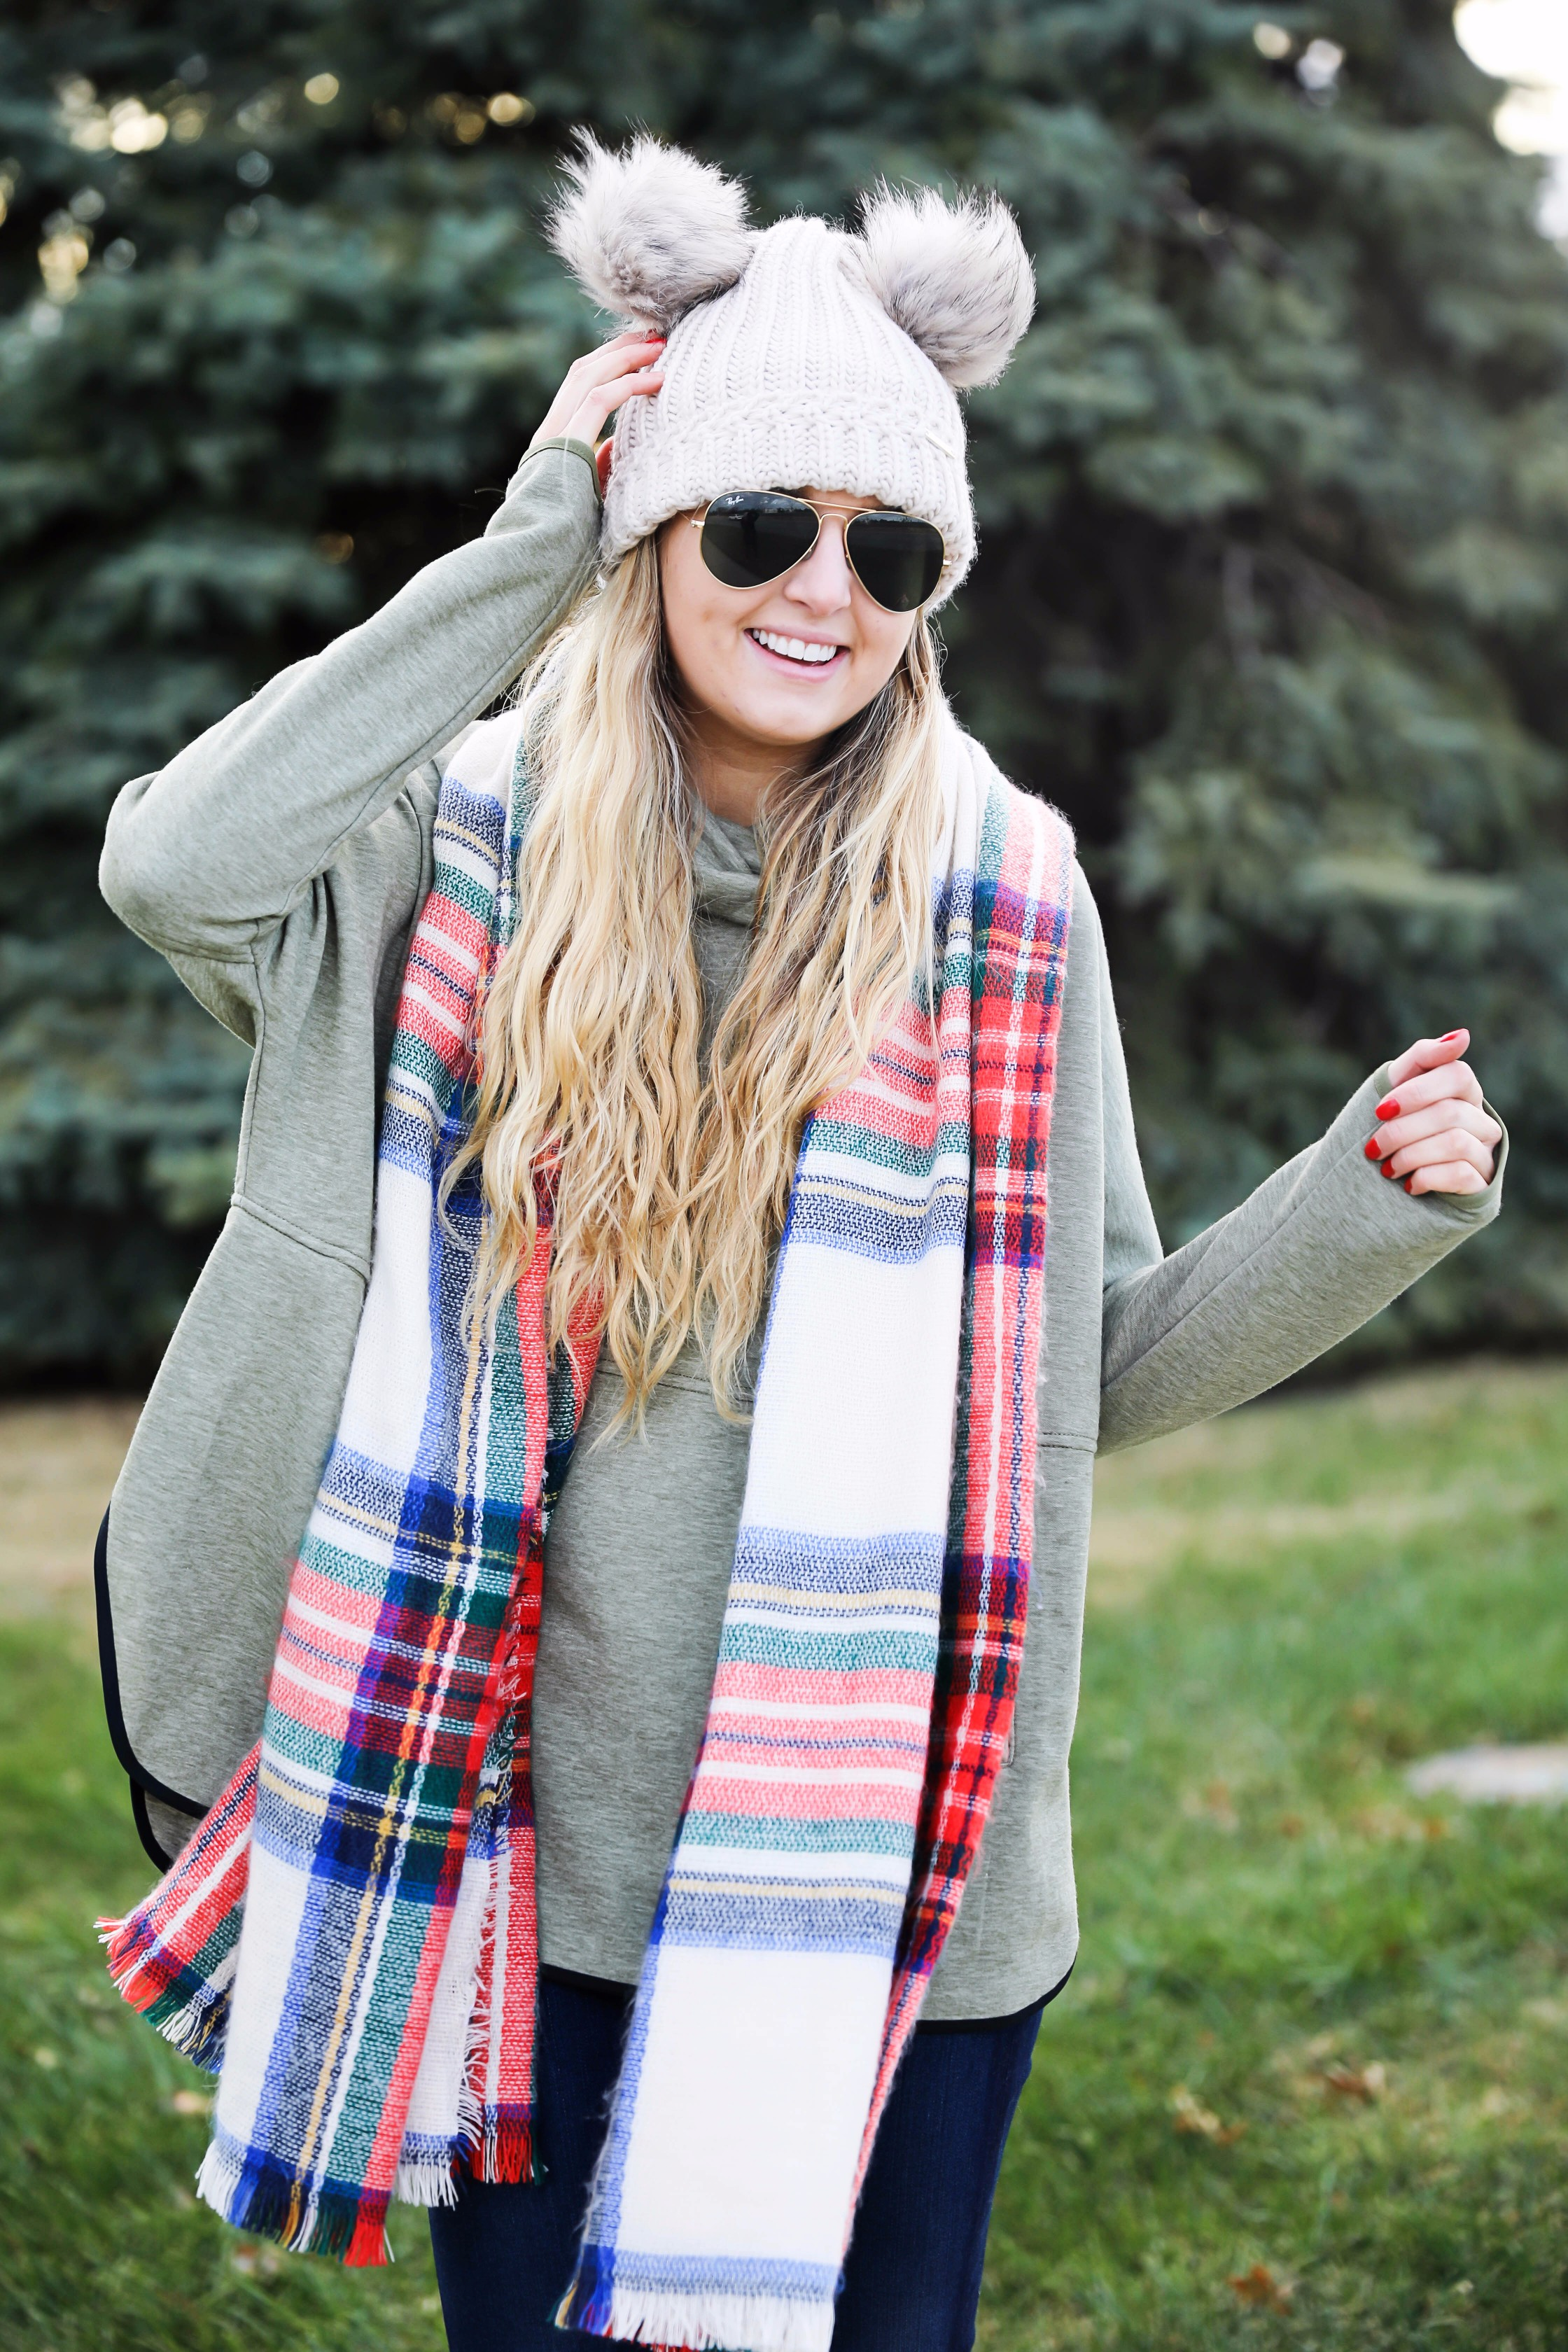 Christmas colored plaid scarf paired with my olive north face and faux fur ear beanie! Wearing my green hunter boots to make this look a casual holiday outfit! Details on daily dose of charm by lauren lindmark